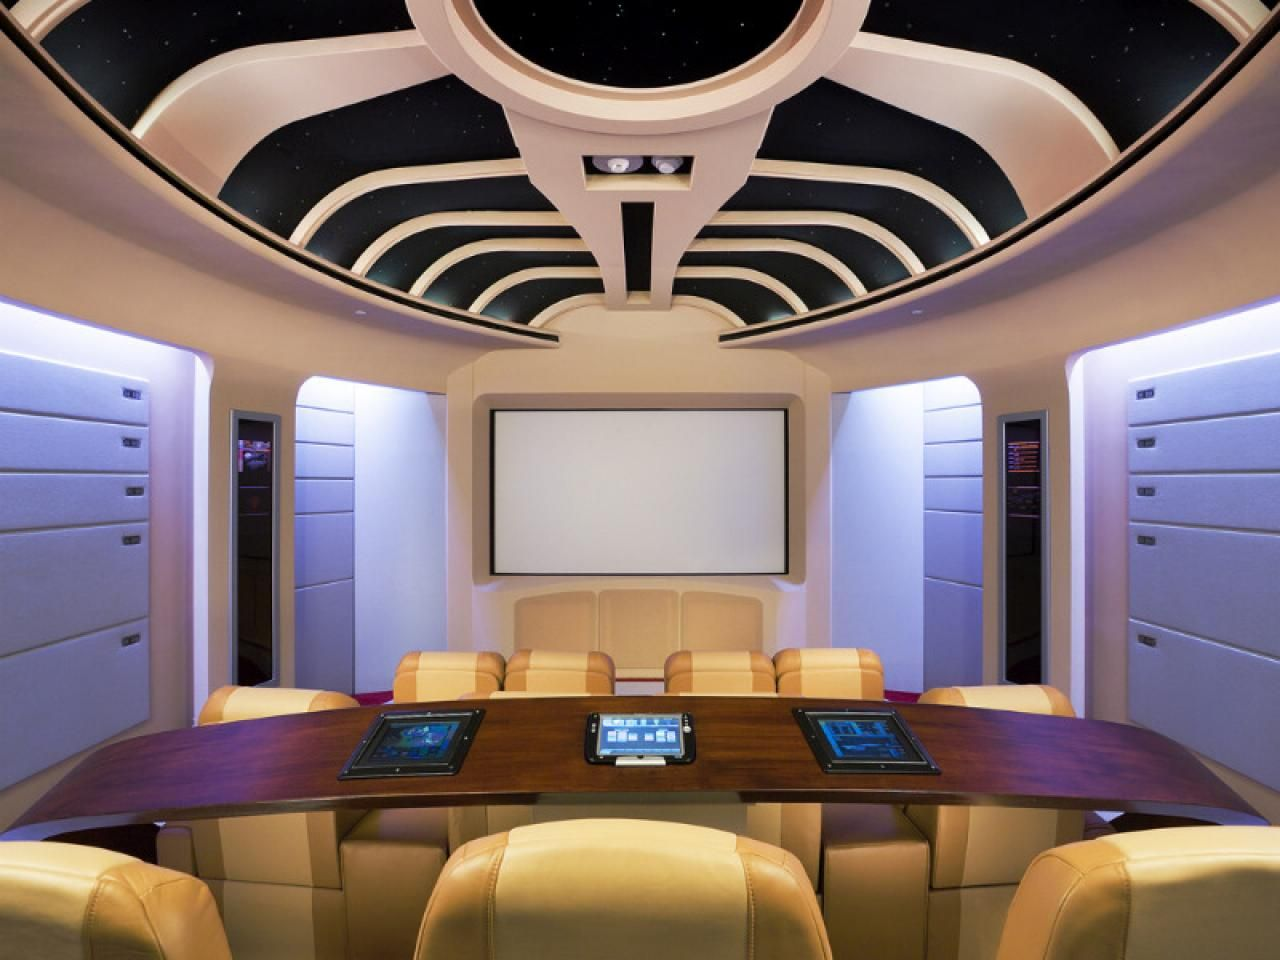 Designer Home Theaters Media Rooms Inspirational Pictures Hgtv Basements And Remodeling Ideas